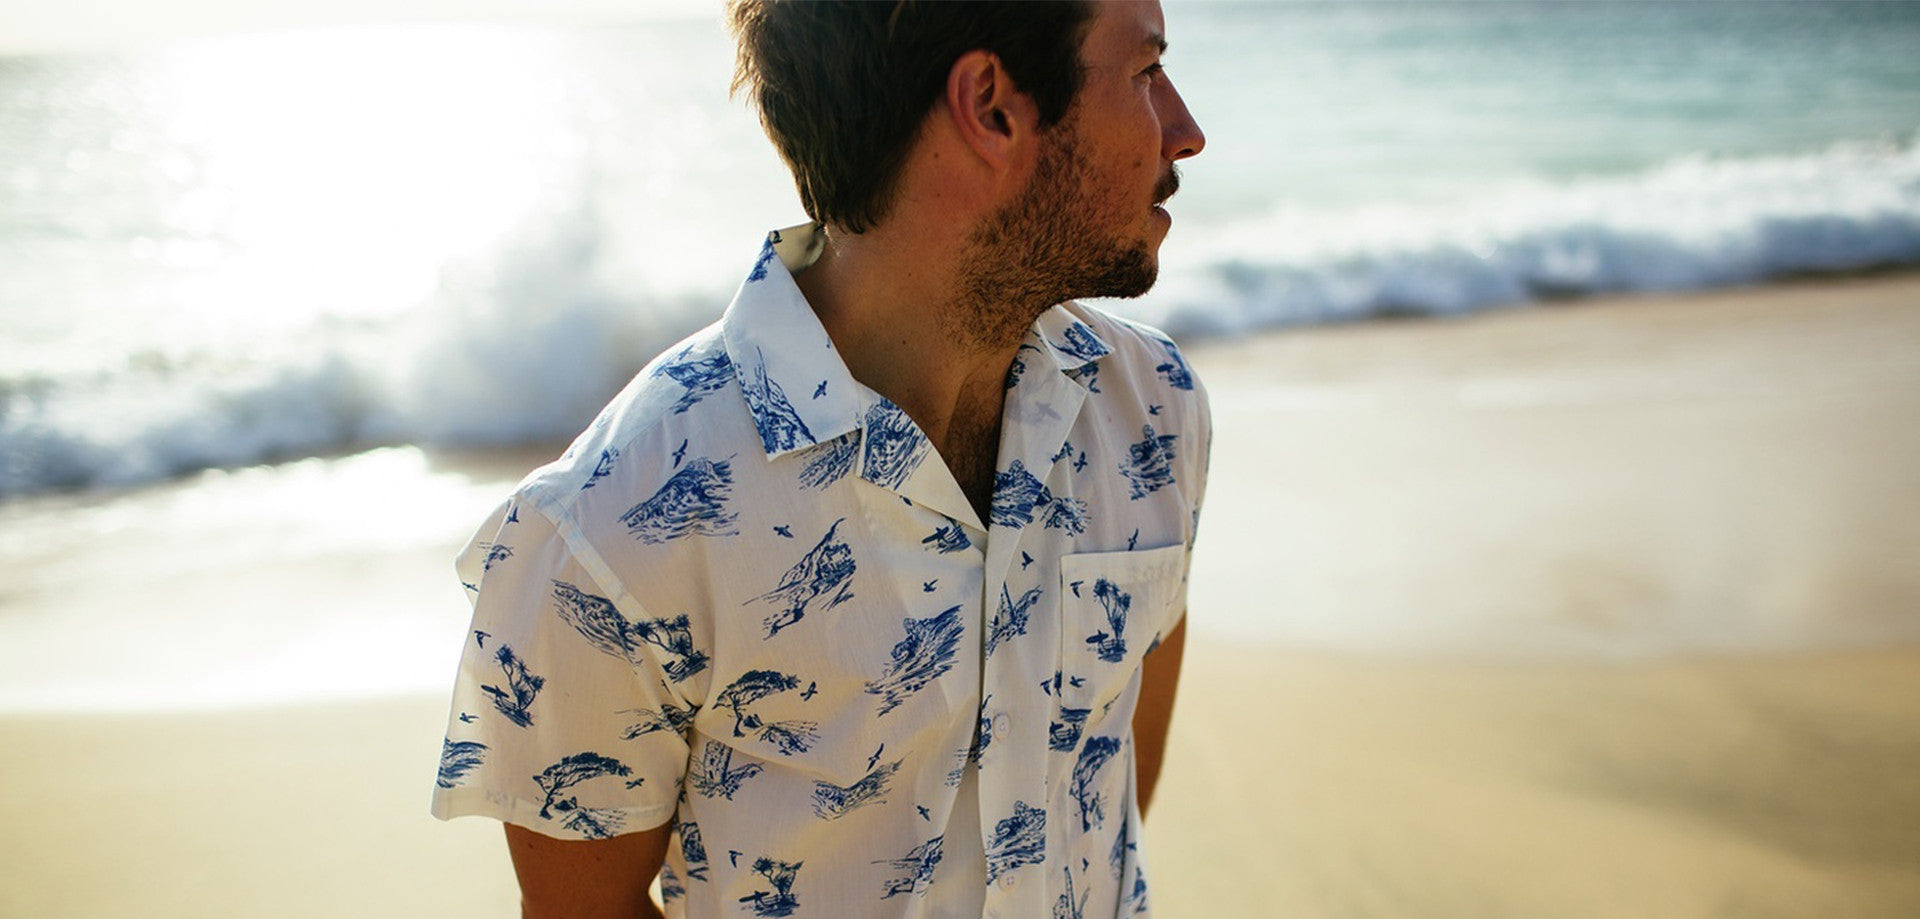 40f3ea43c76f00 Inspired by the paradisiac volcanic archipelago of Hawaii, the Aloha shirt  – commonly referred to as the Hawaiian shirt – was first introduced to the  ...